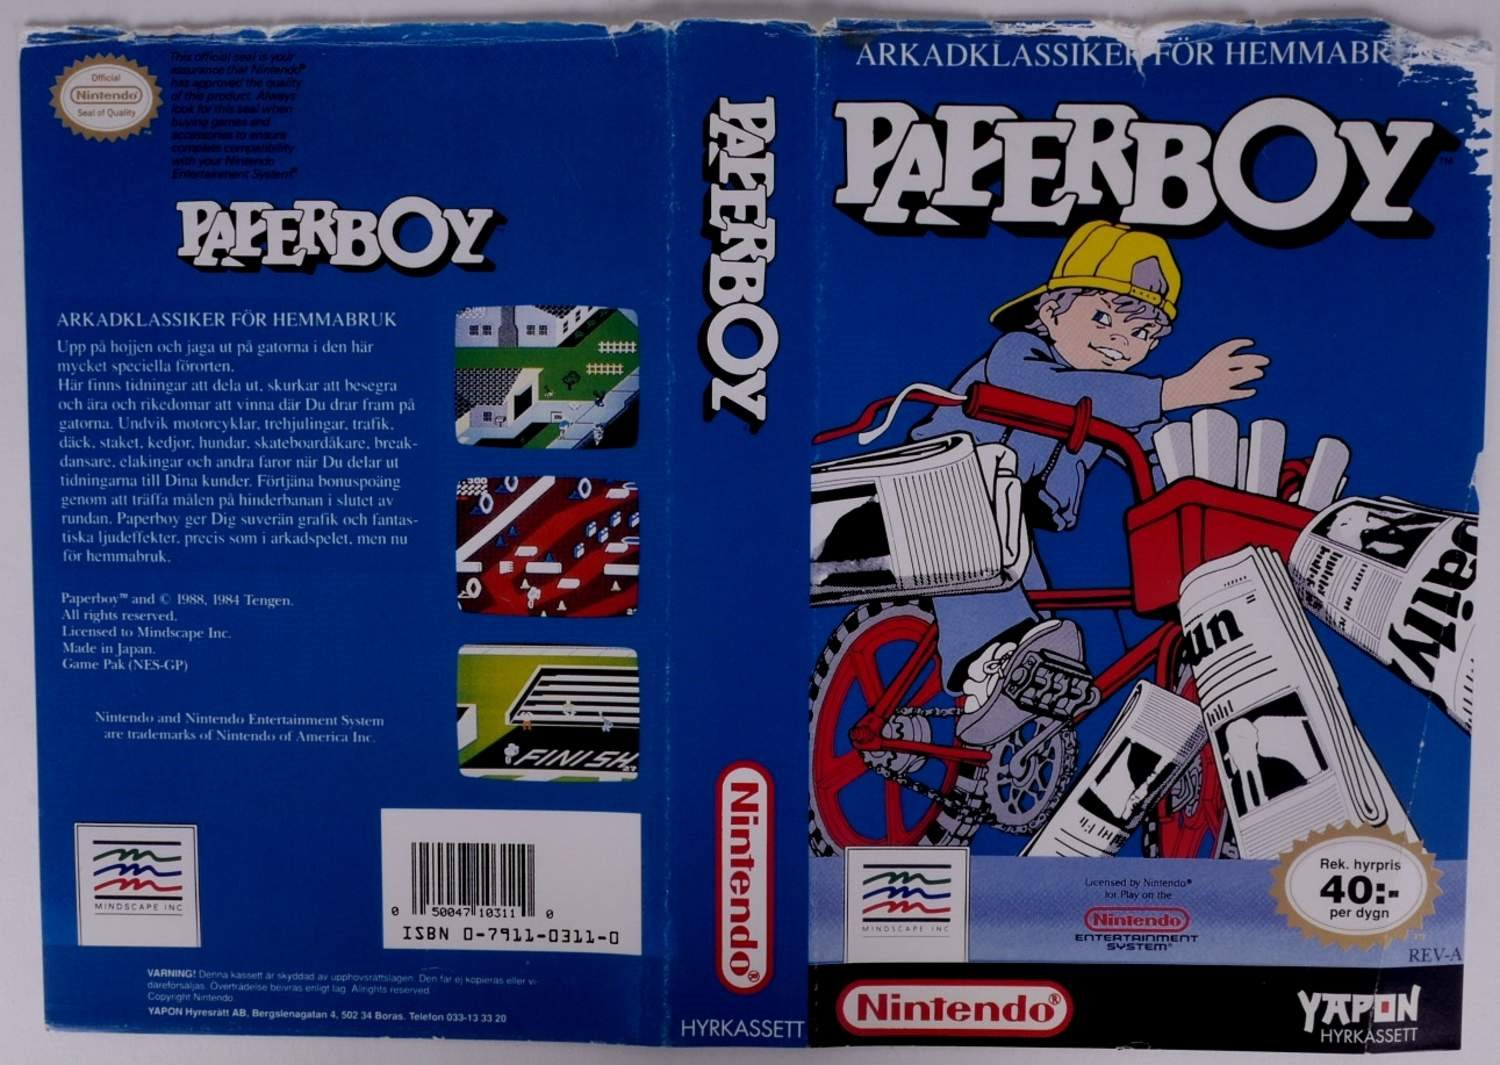 Paperboy (Original YAPON Rental Cover Paper) -